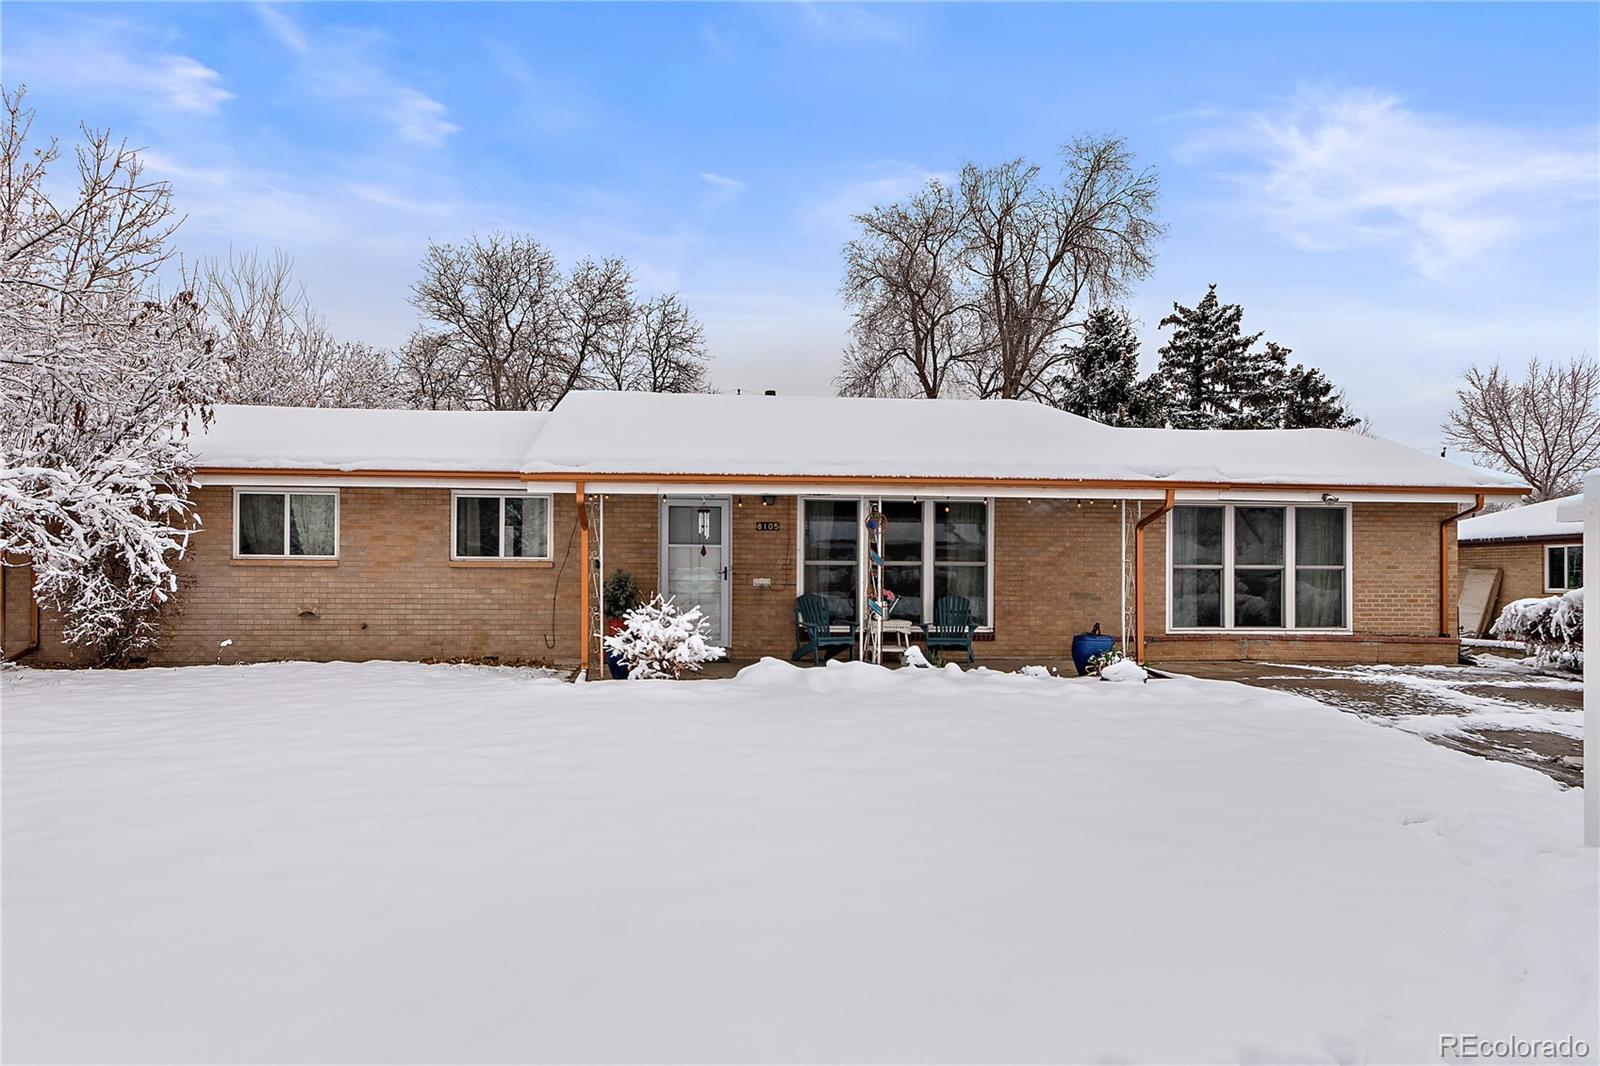 MLS# 5584211 - 1 - 8105 W 16th Place, Lakewood, CO 80214